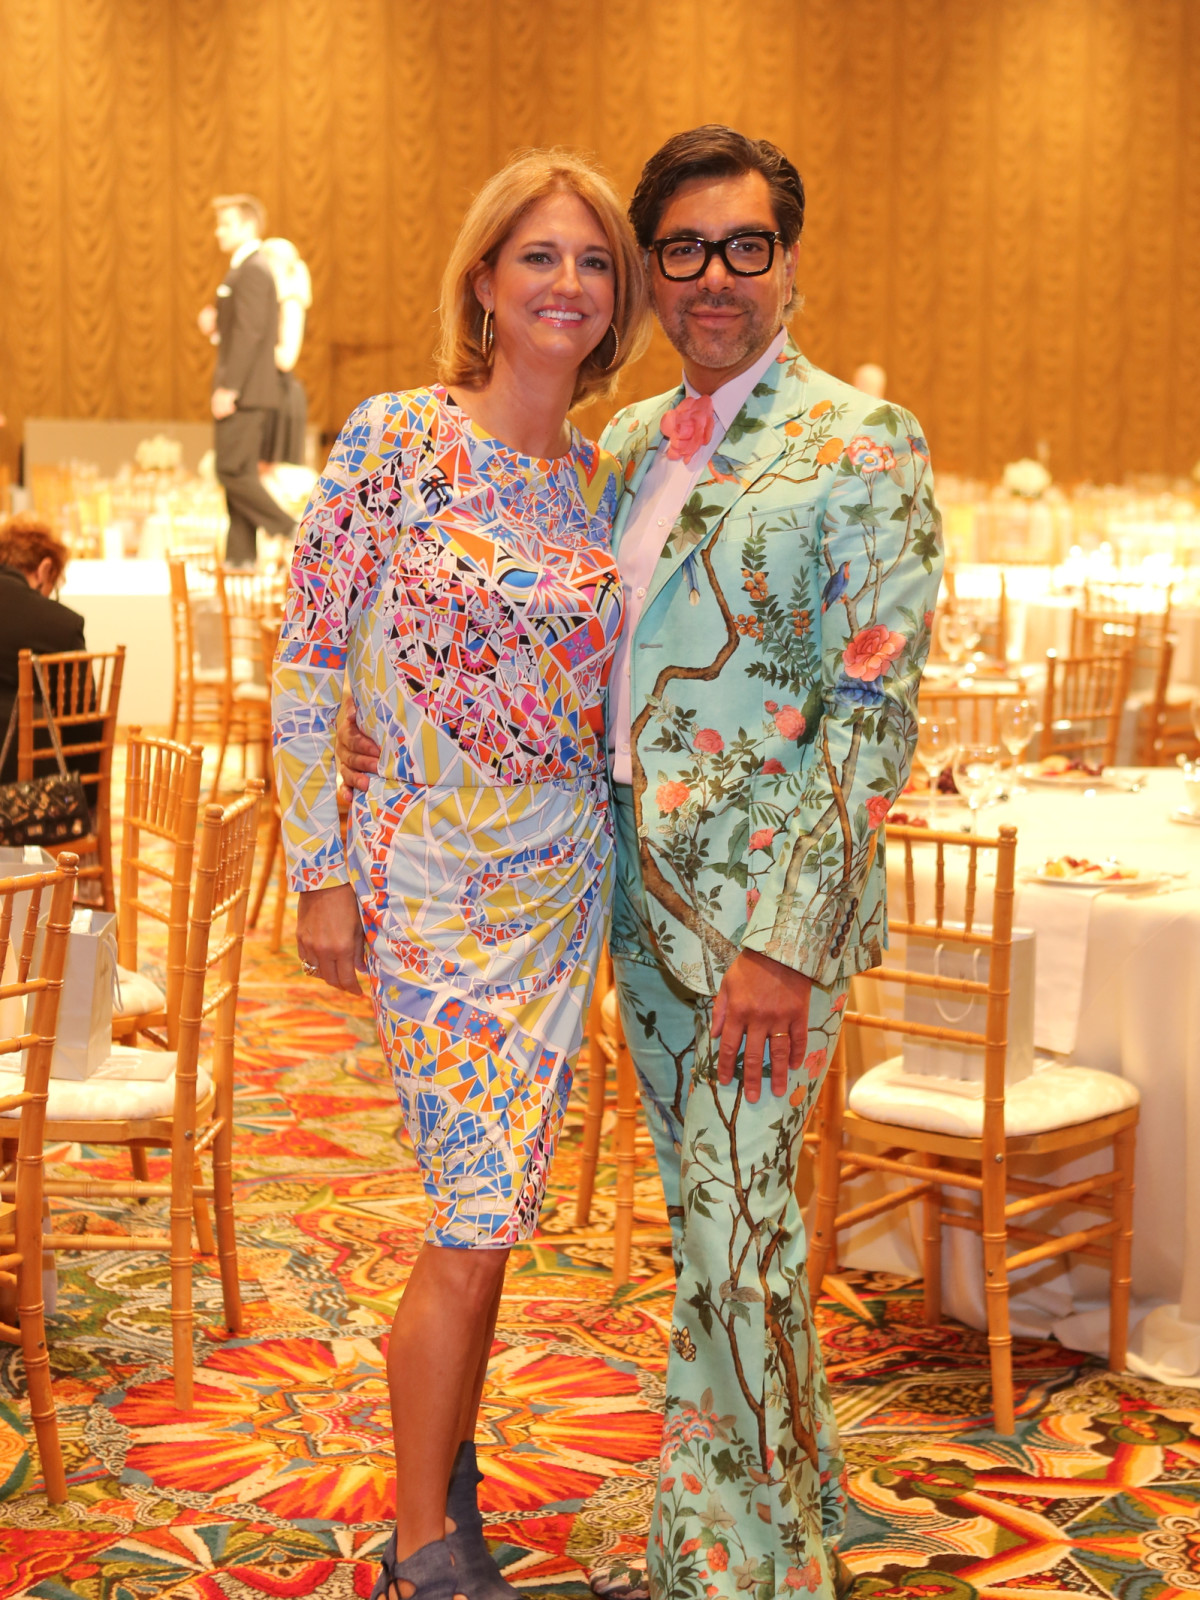 Best Dressed luncheon, March 2016, Liz Zaruba in Pucci, Ceron in Gucci